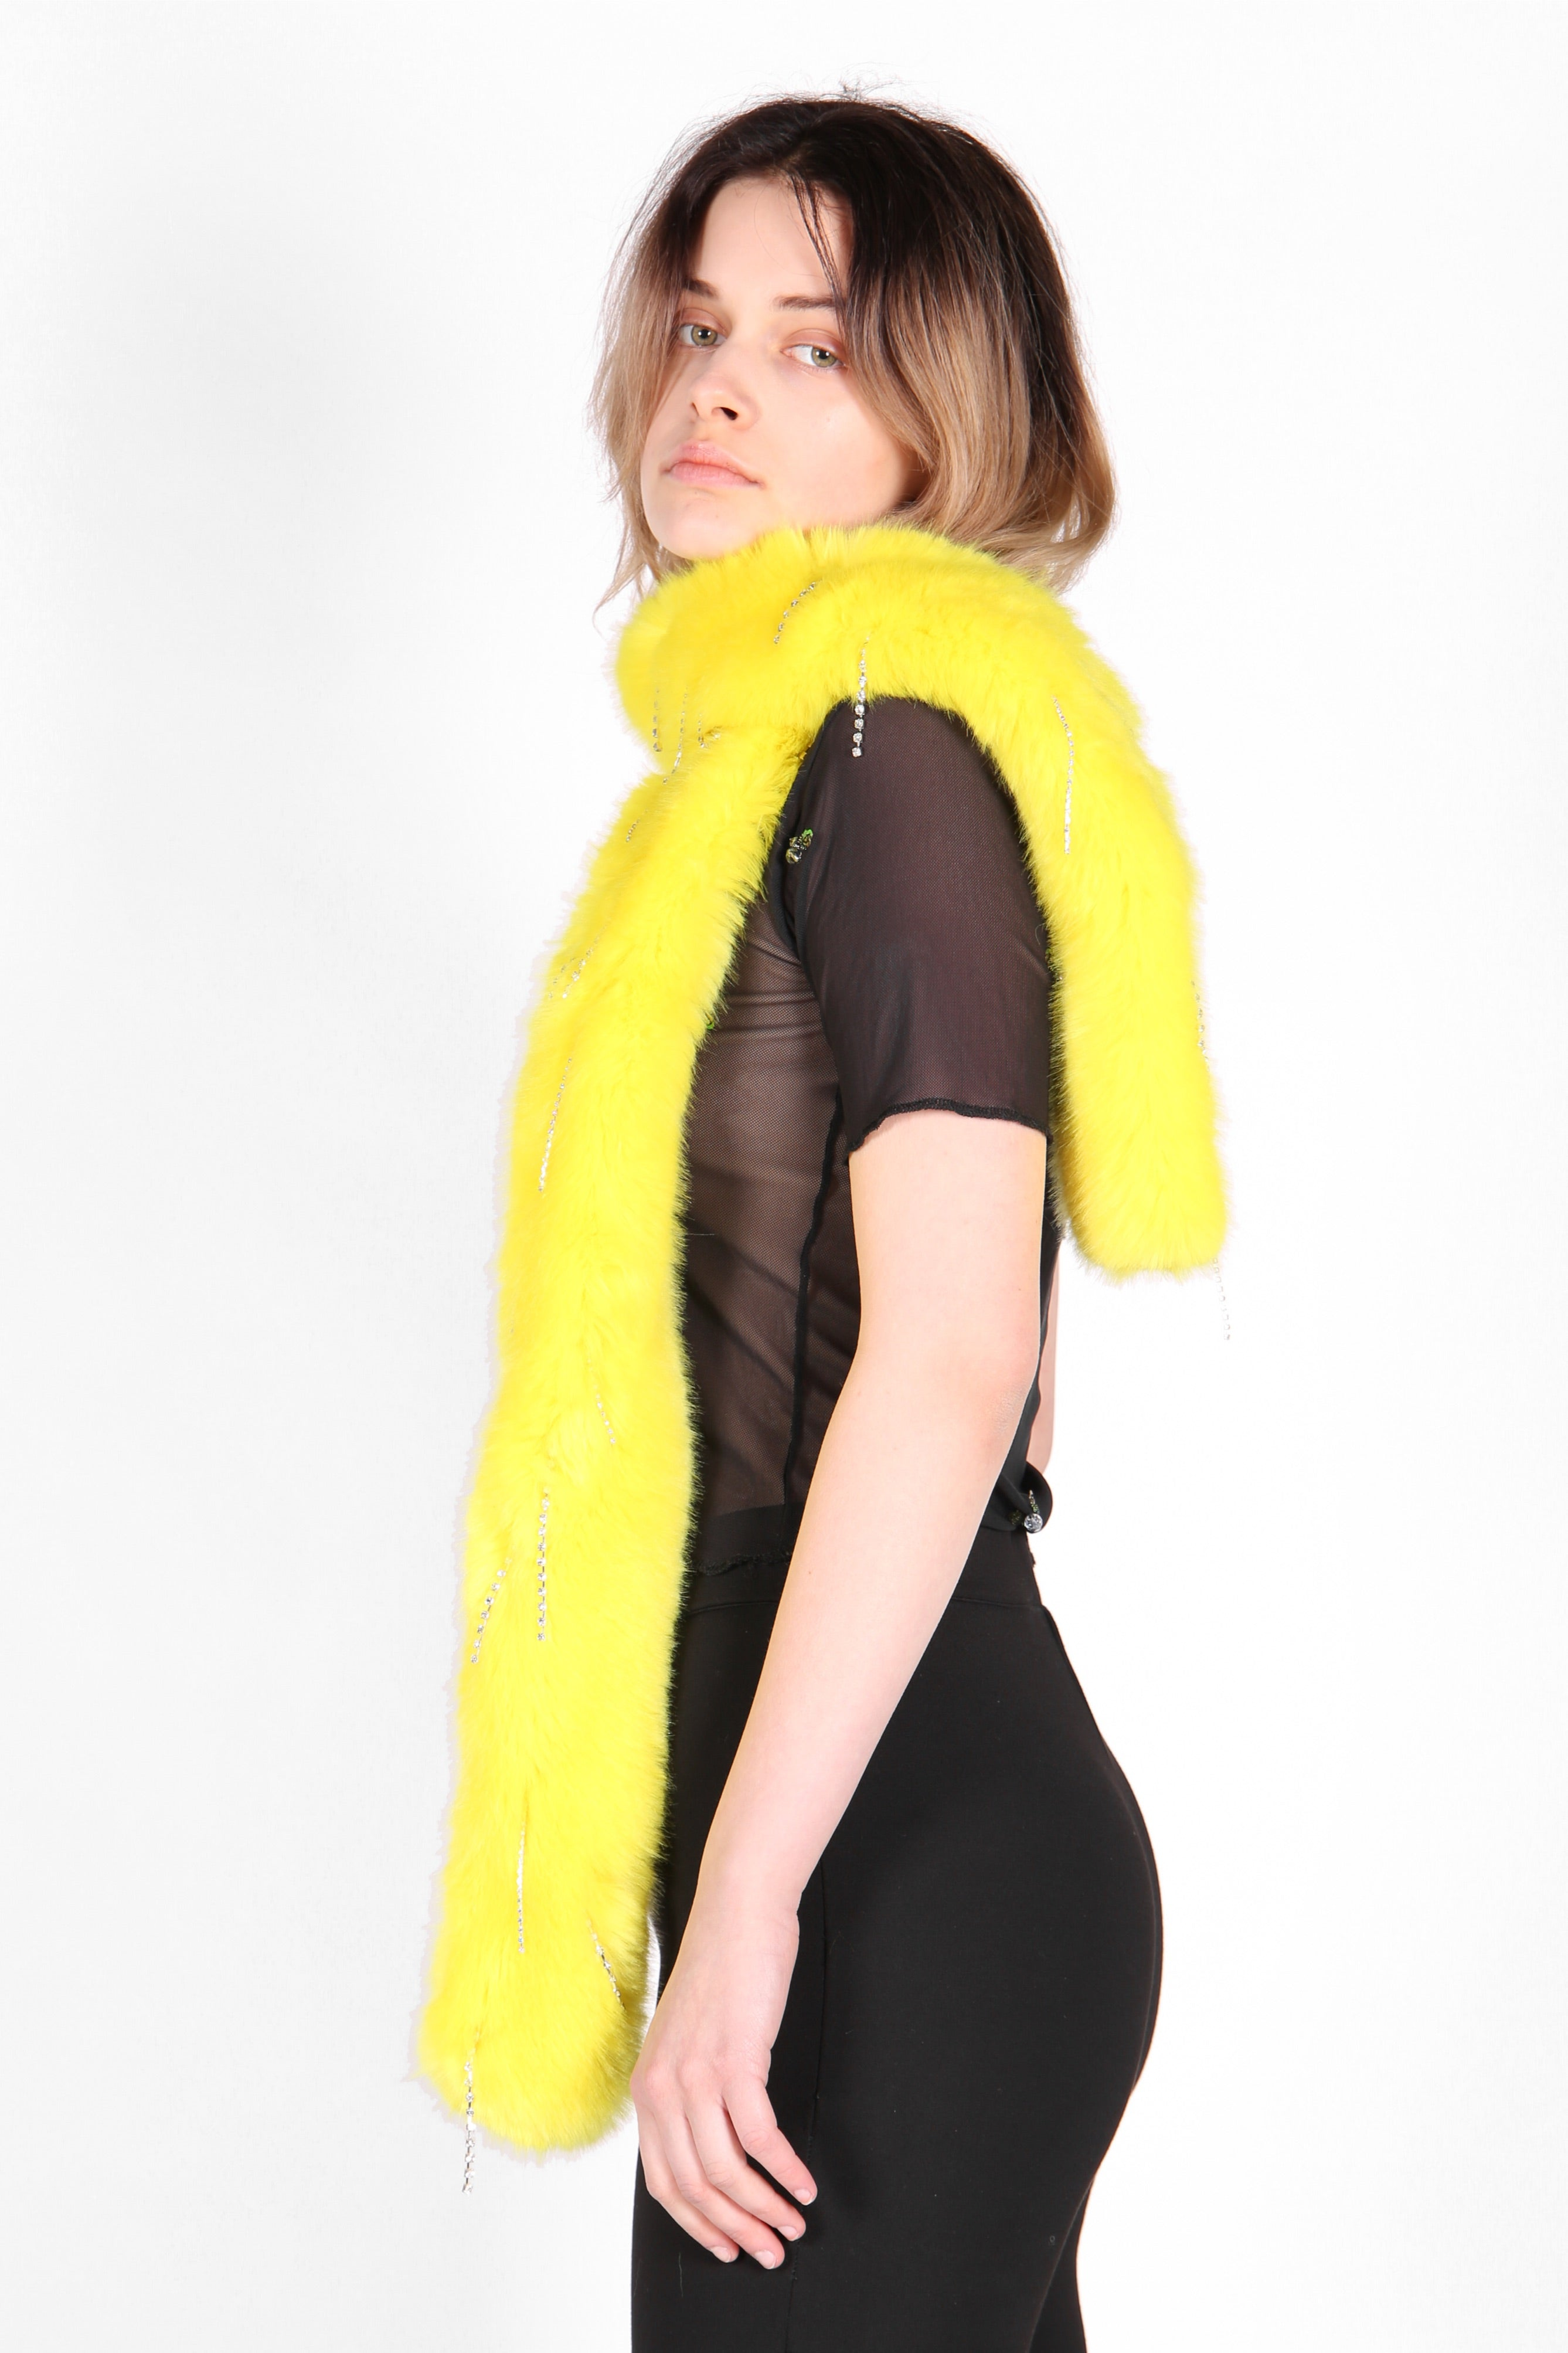 Syd Scarf Yellow-50m London